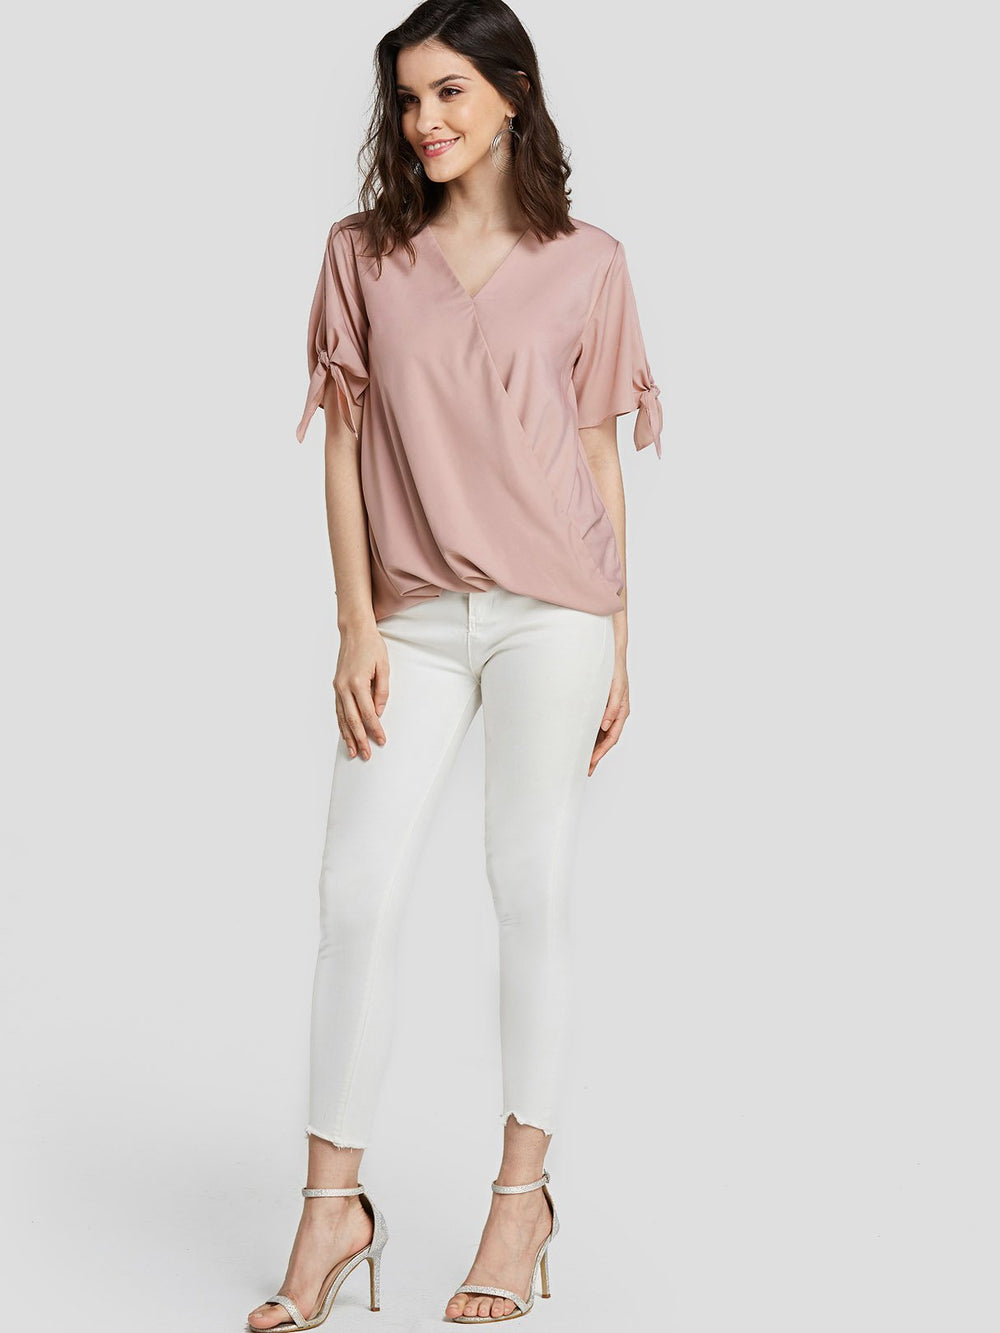 Womens Pink Blouses